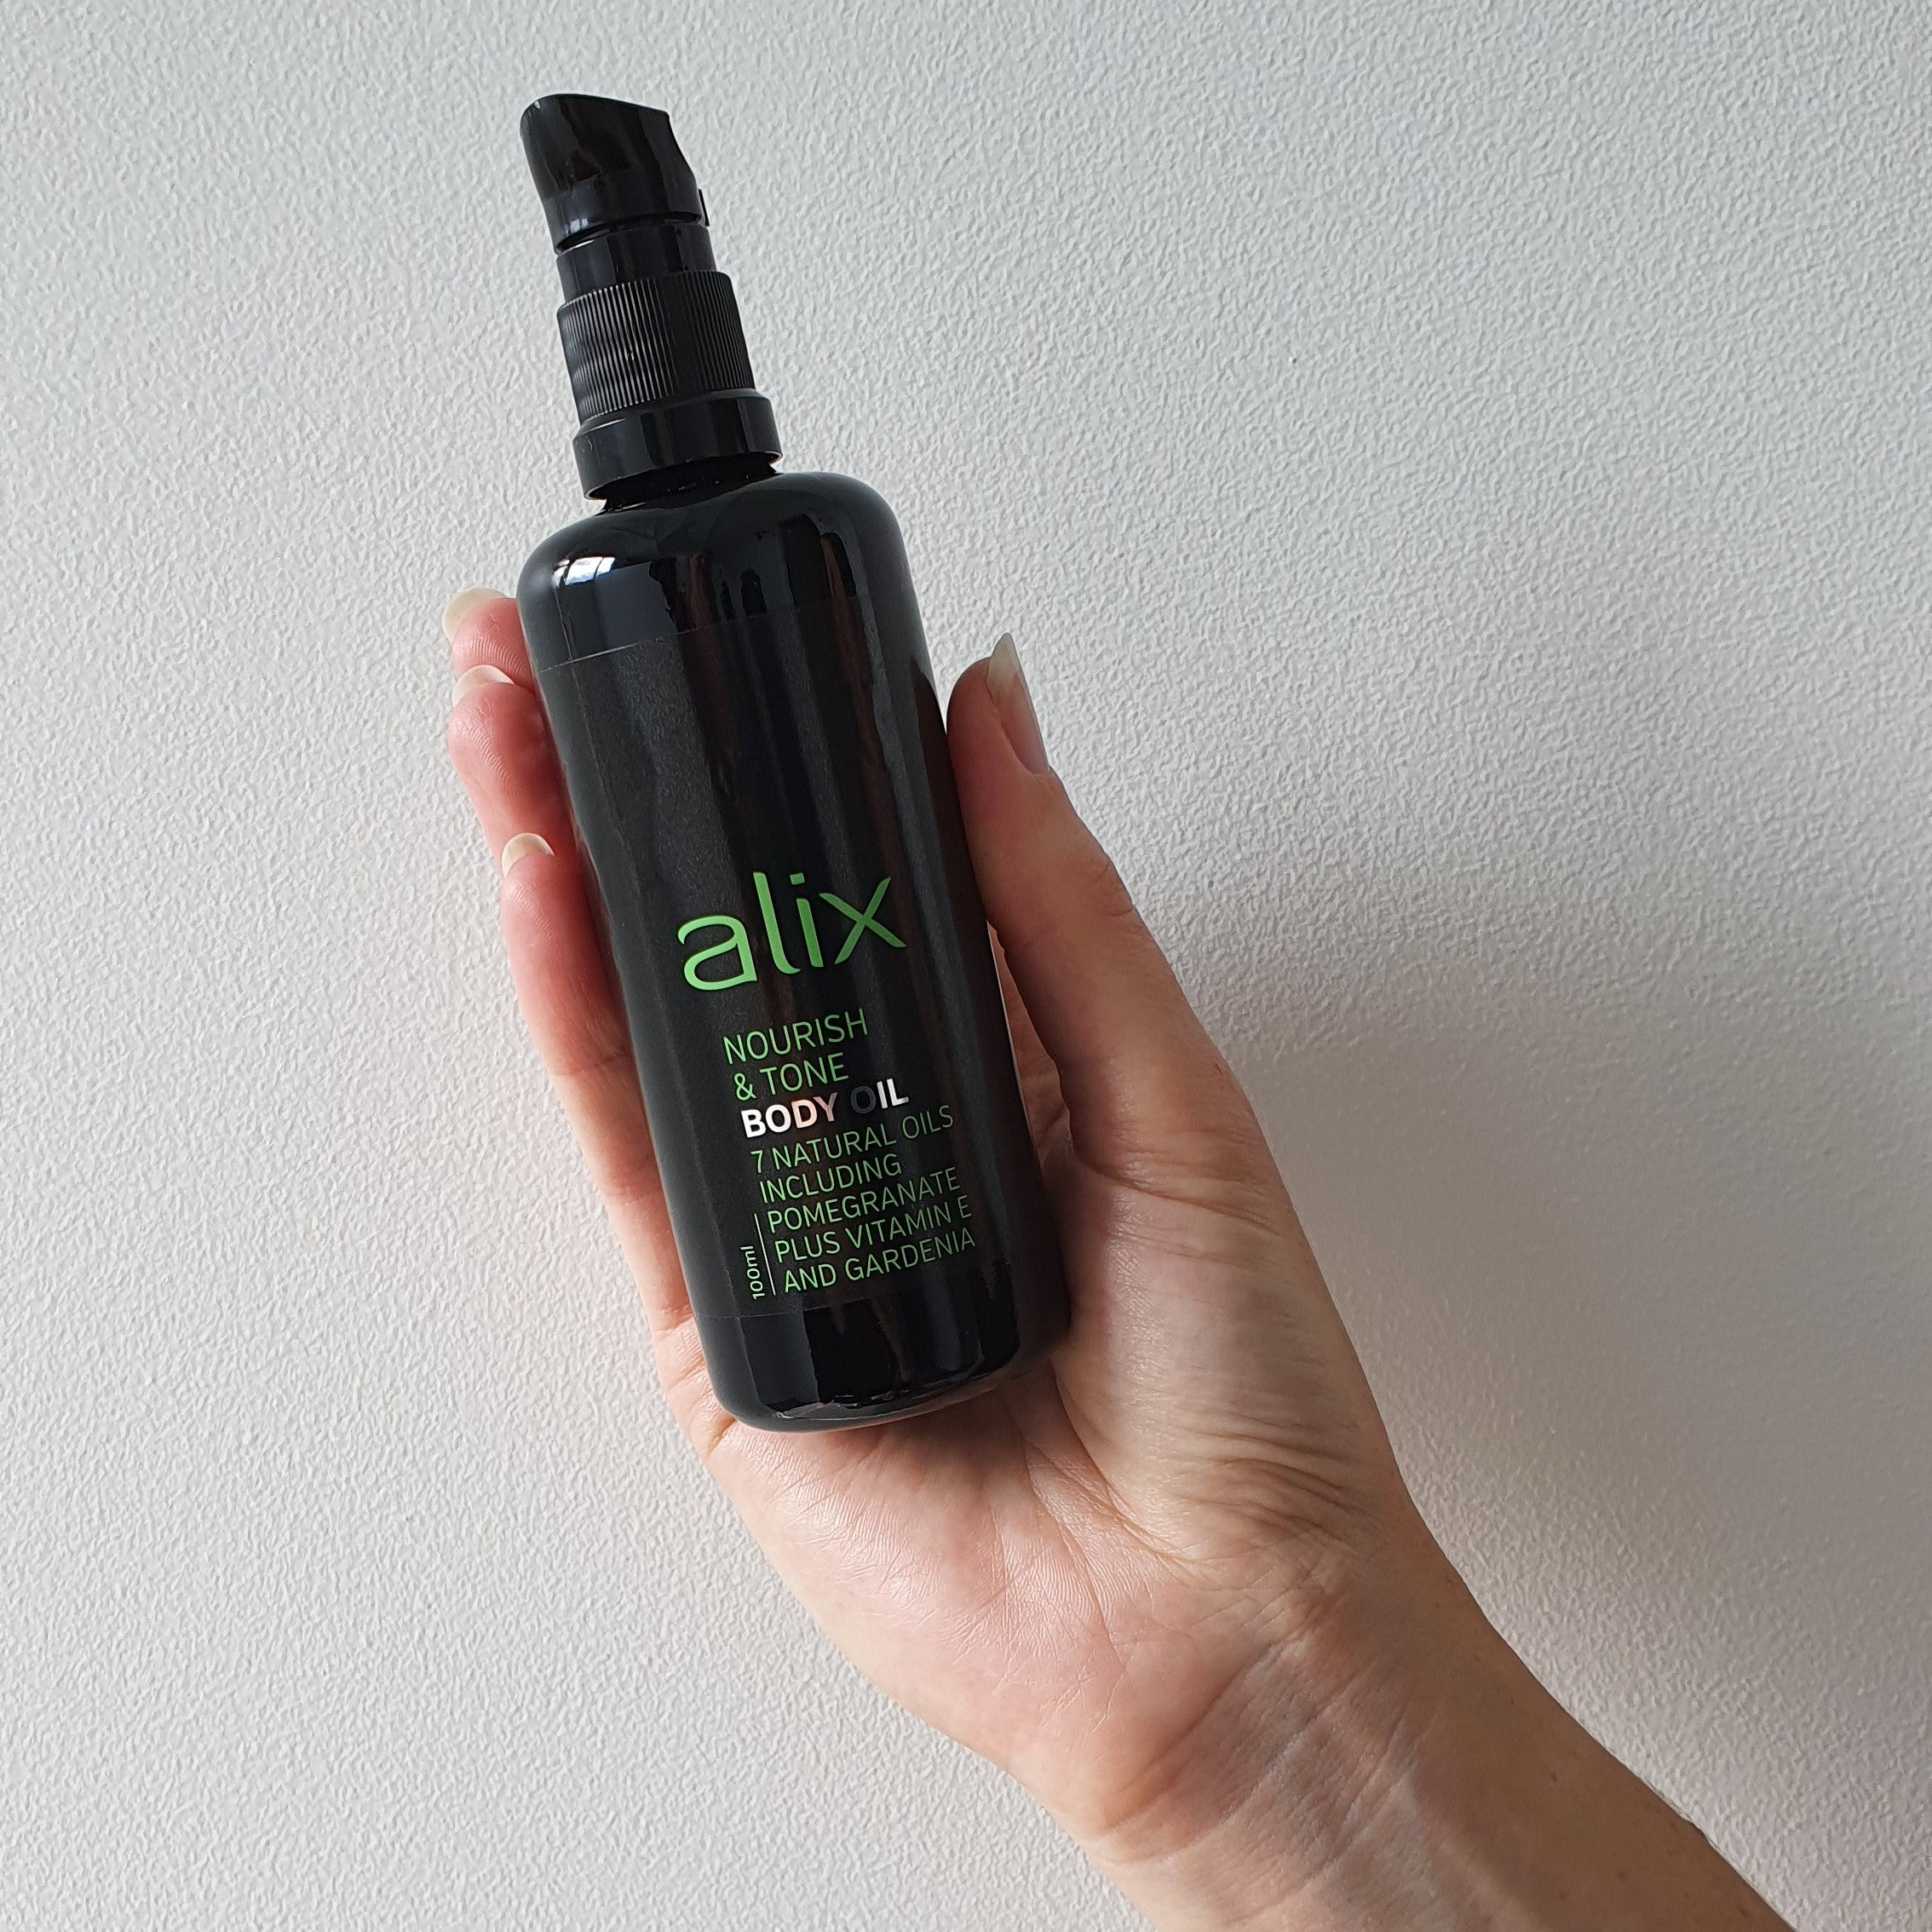 Alix Skincare Nourish + Tone Body Oil